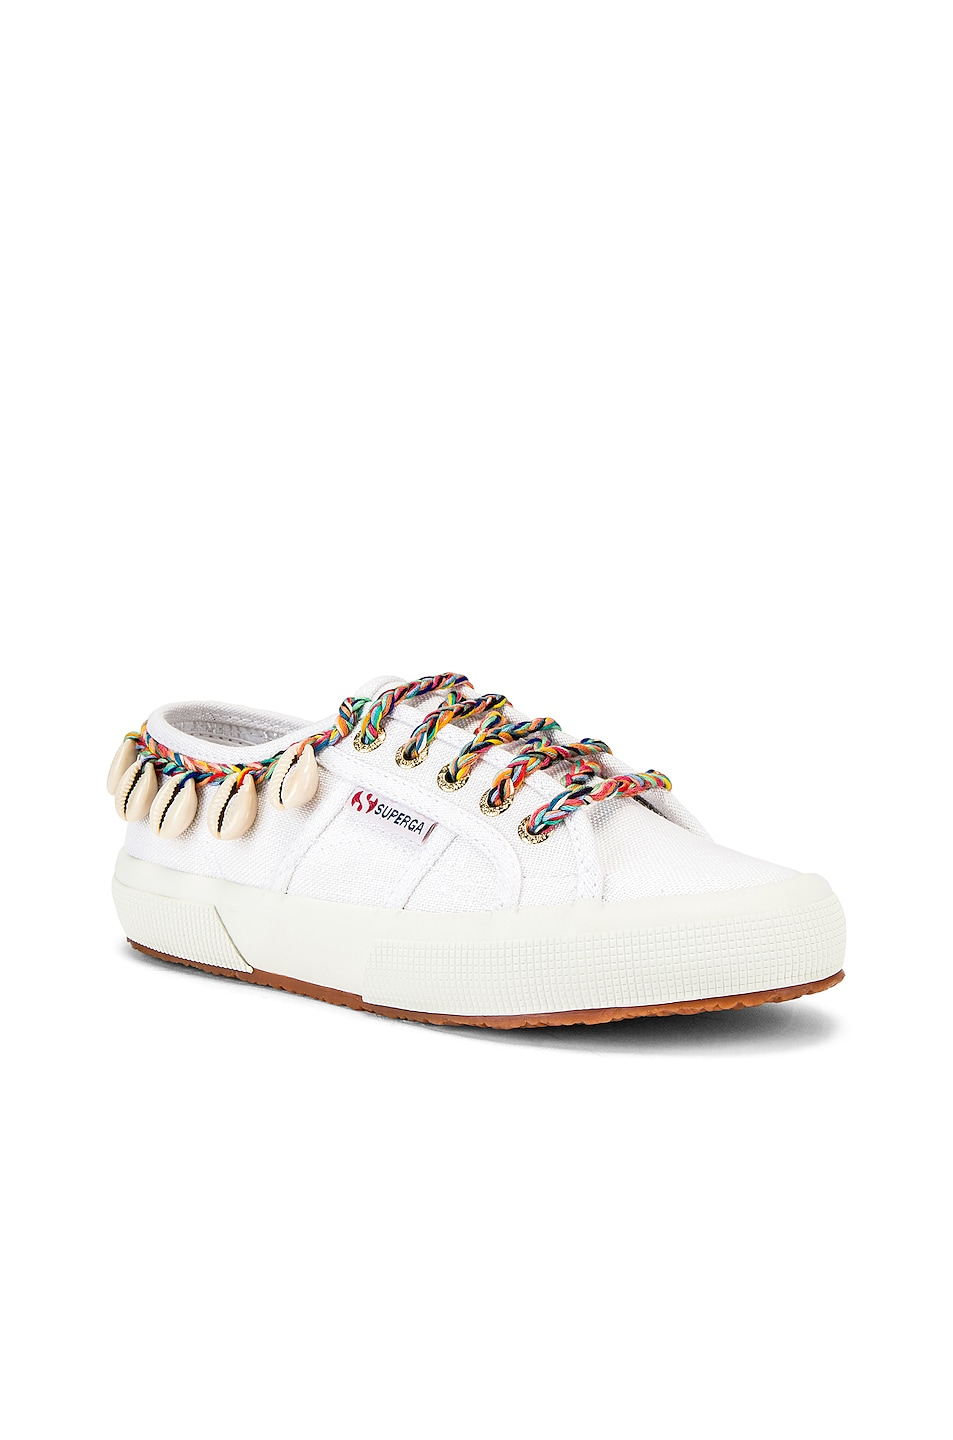 Image 2 of ALANUI x SUPERGA Low Top Cowrie Shells Sneaker in White Multi